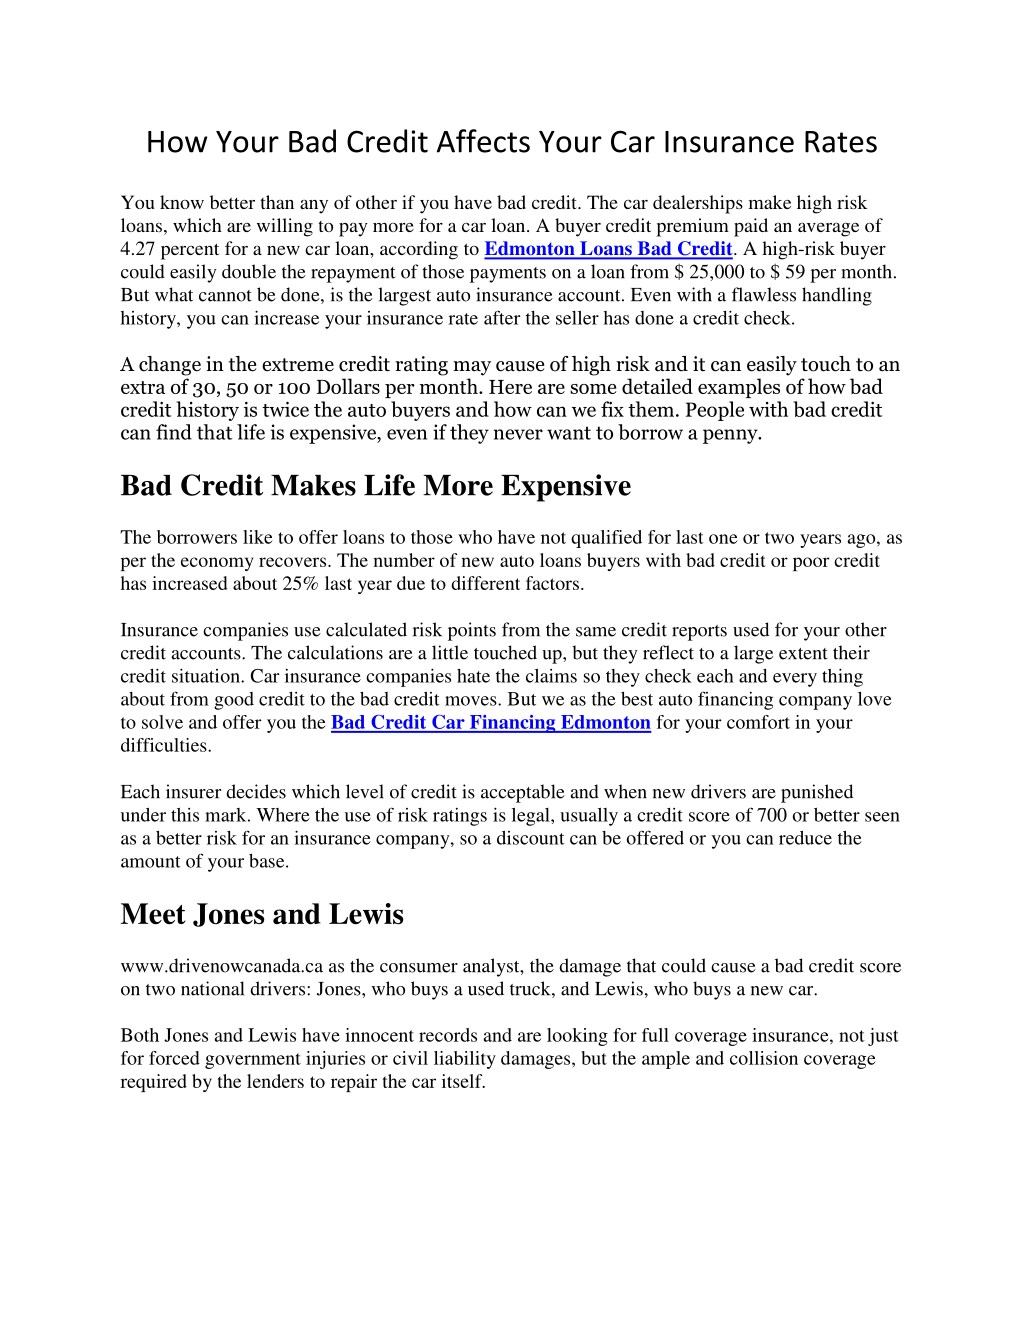 Ppt How Your Bad Credit Affects Your Car Insurance Rates Powerpoint Presentation Id 7606164